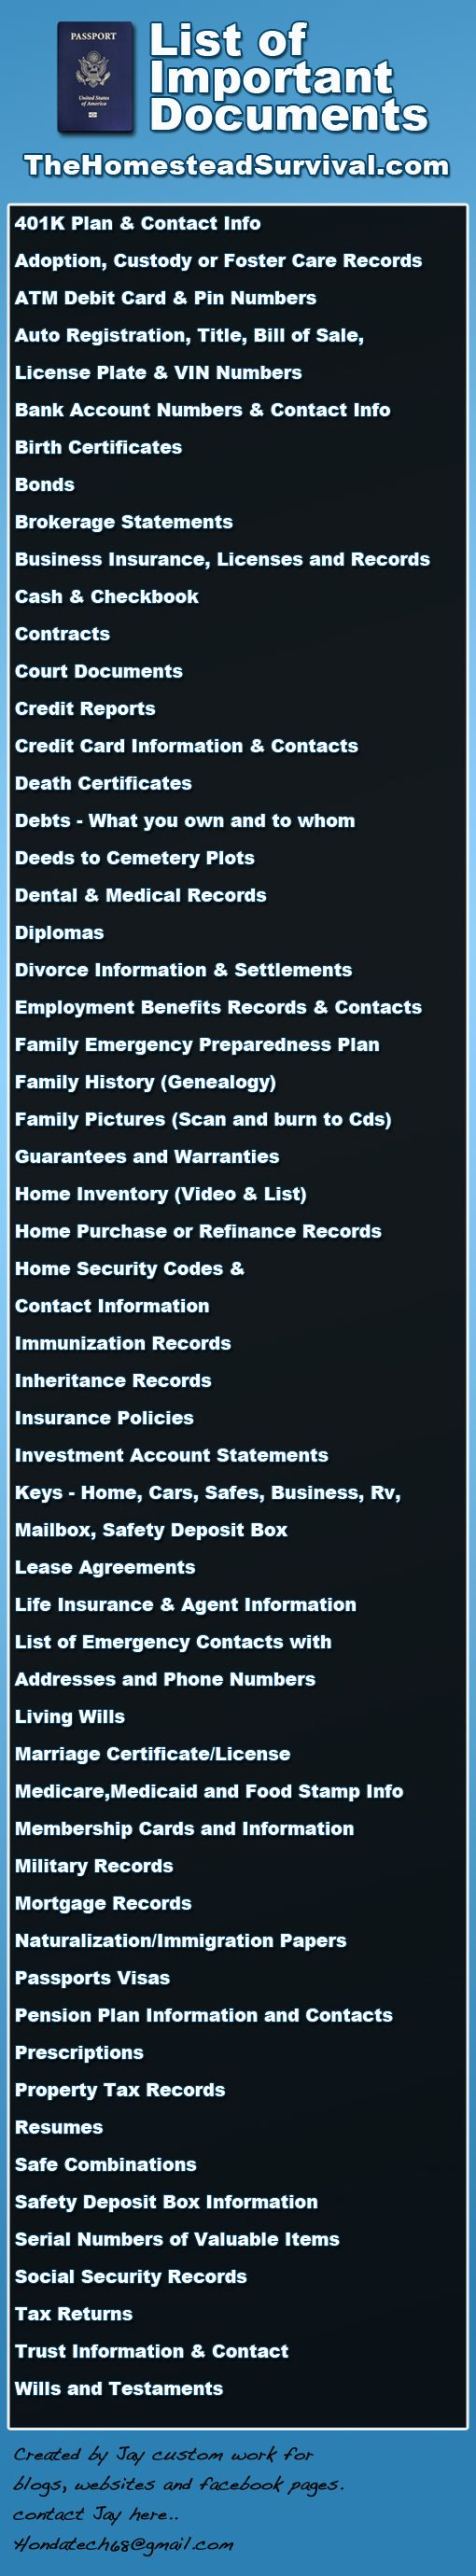 List Of Important Documents ~ Creating an Emergency Preparedness Folder keeps all your important documents in one place in case of a disaster.